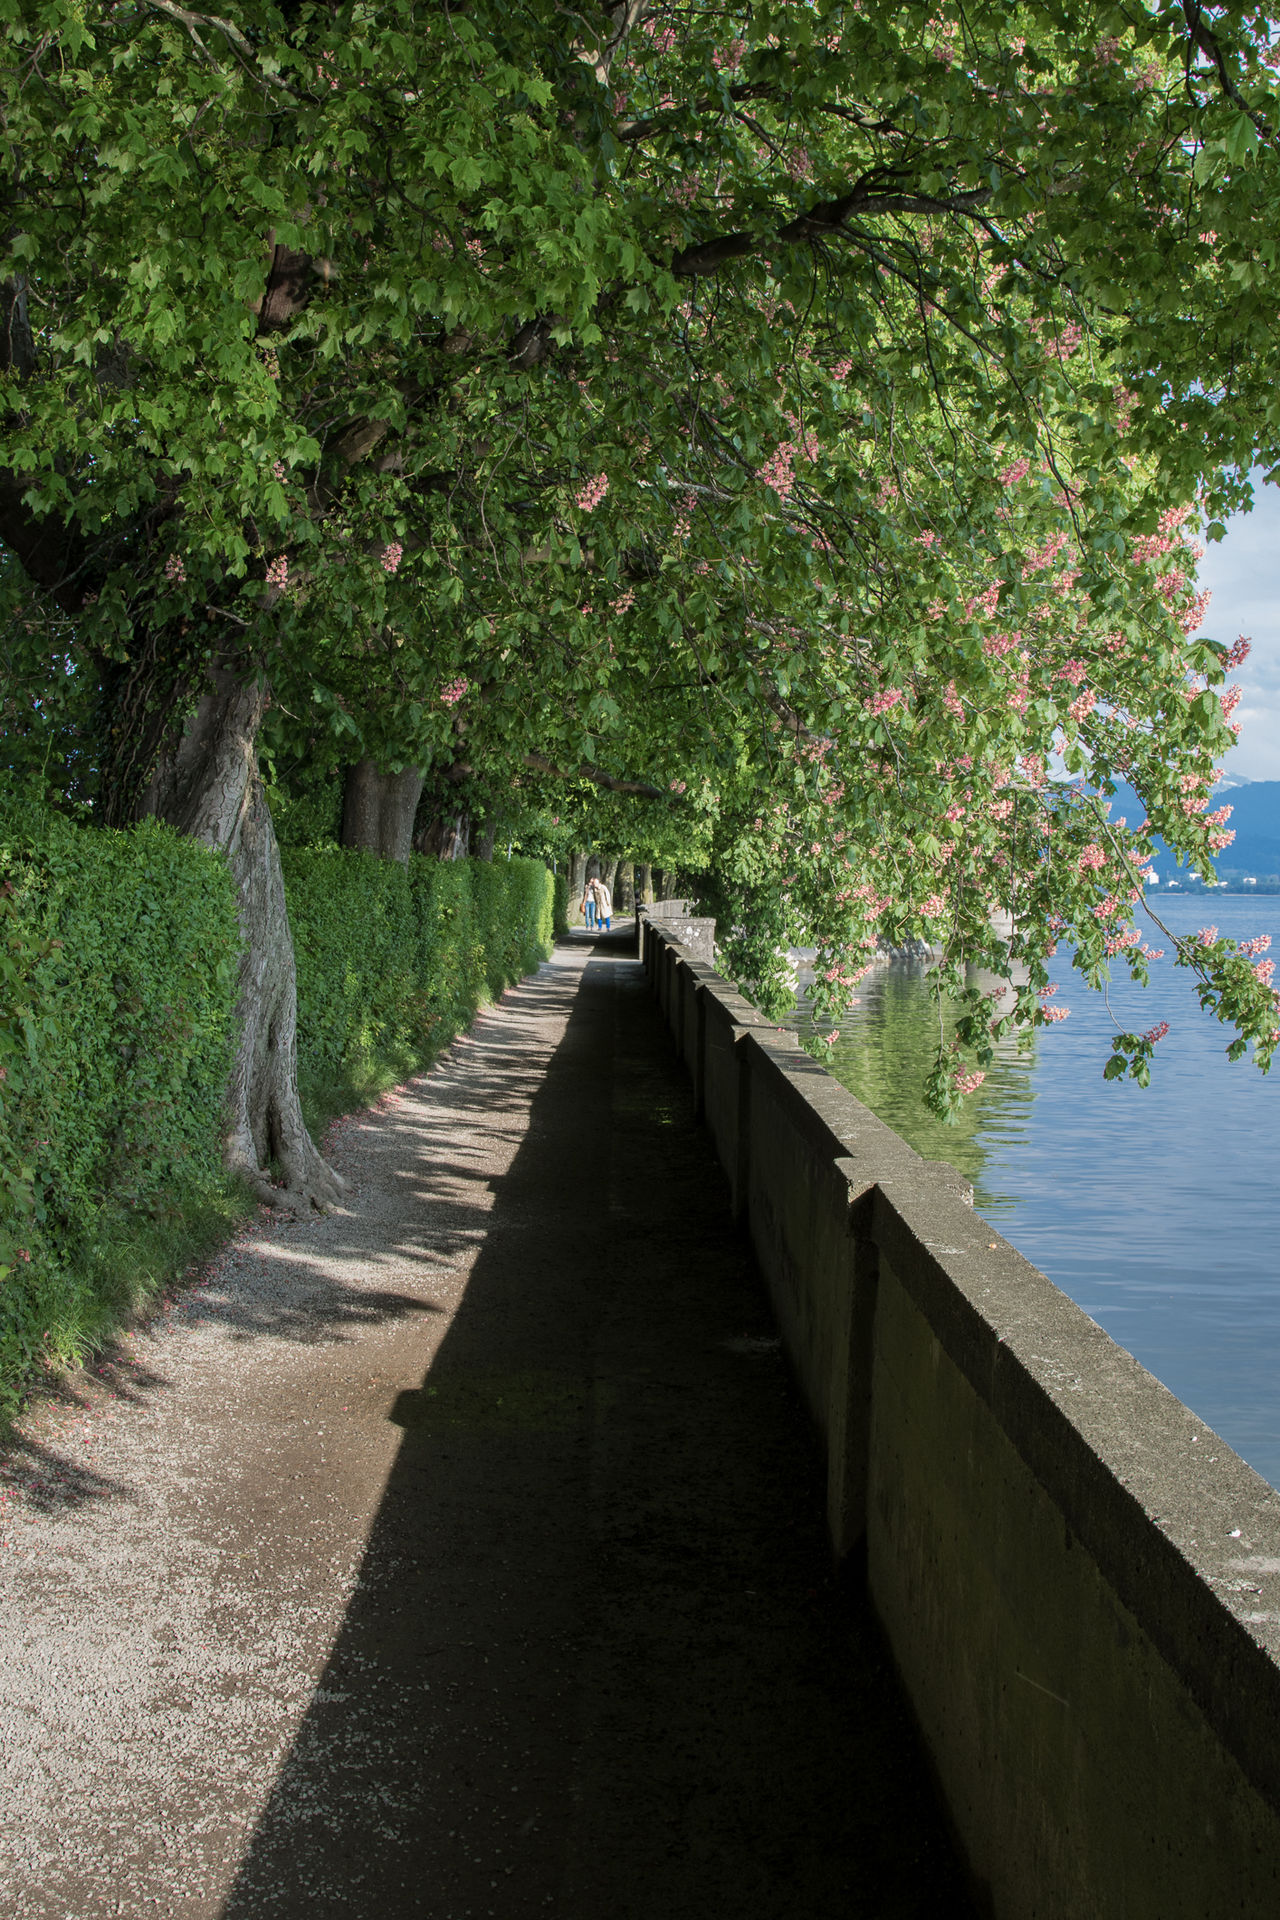 Beauty In Nature Blue Sky Bodensee Bodenseeregion Cloudy Day Idyllic Lindau Lindau Bodensee Lindau Insel Mountain View Mountains Nature No People Outdoors Sea Sea And Sky Seaside Sunlight Tranquility Water